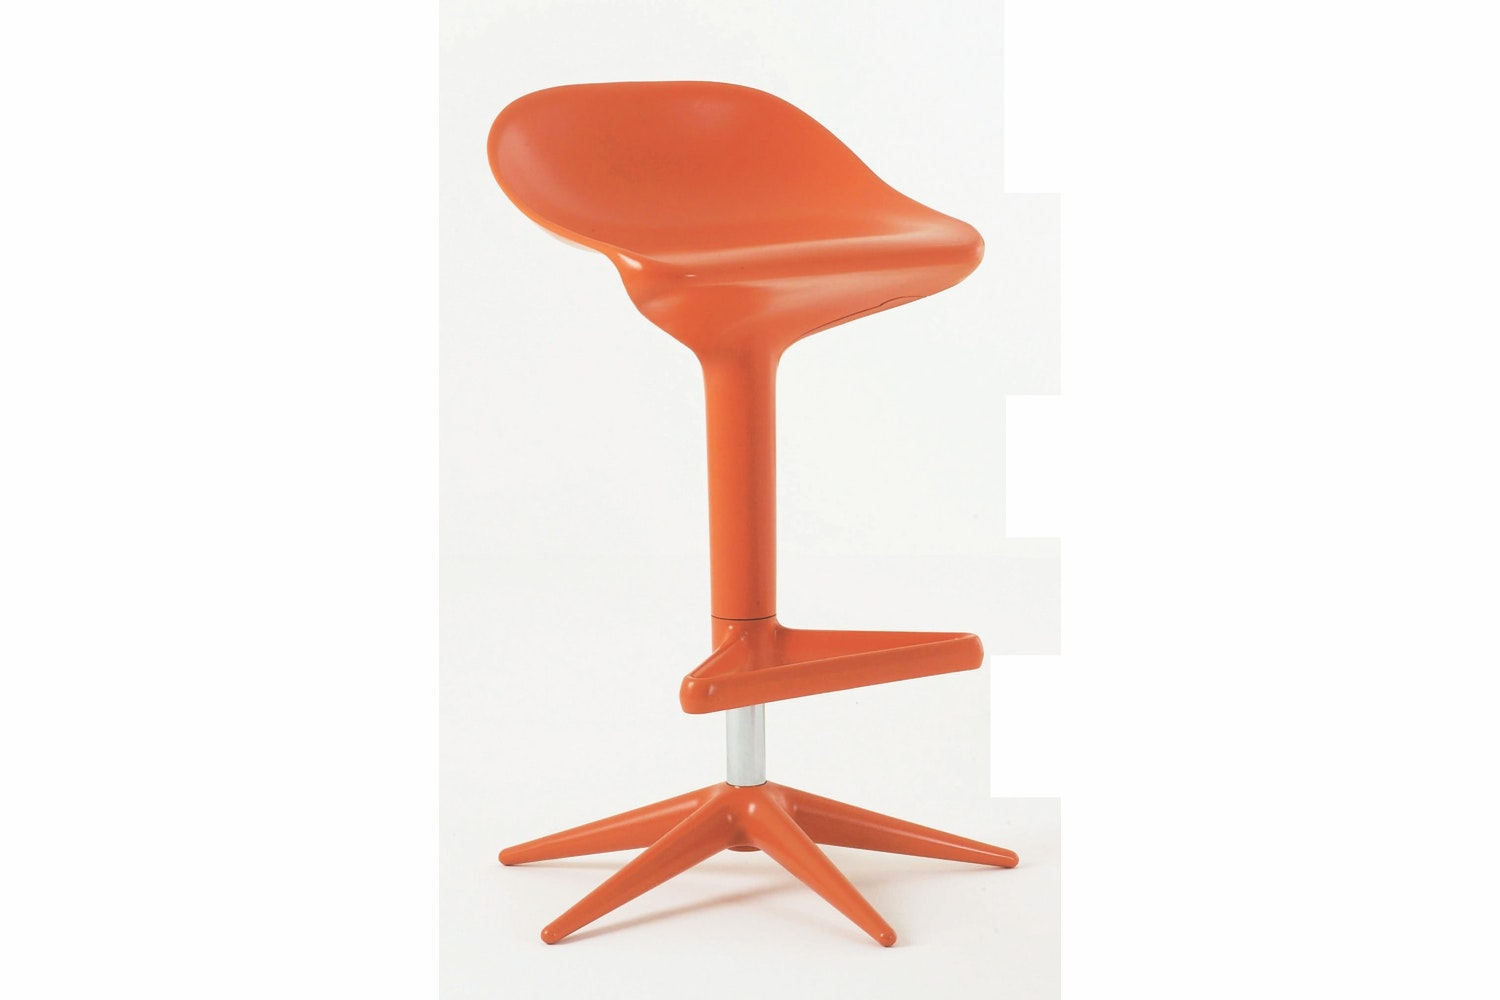 Spoon Stool by Antonio Citterio with Toan Nguyen for Kartell